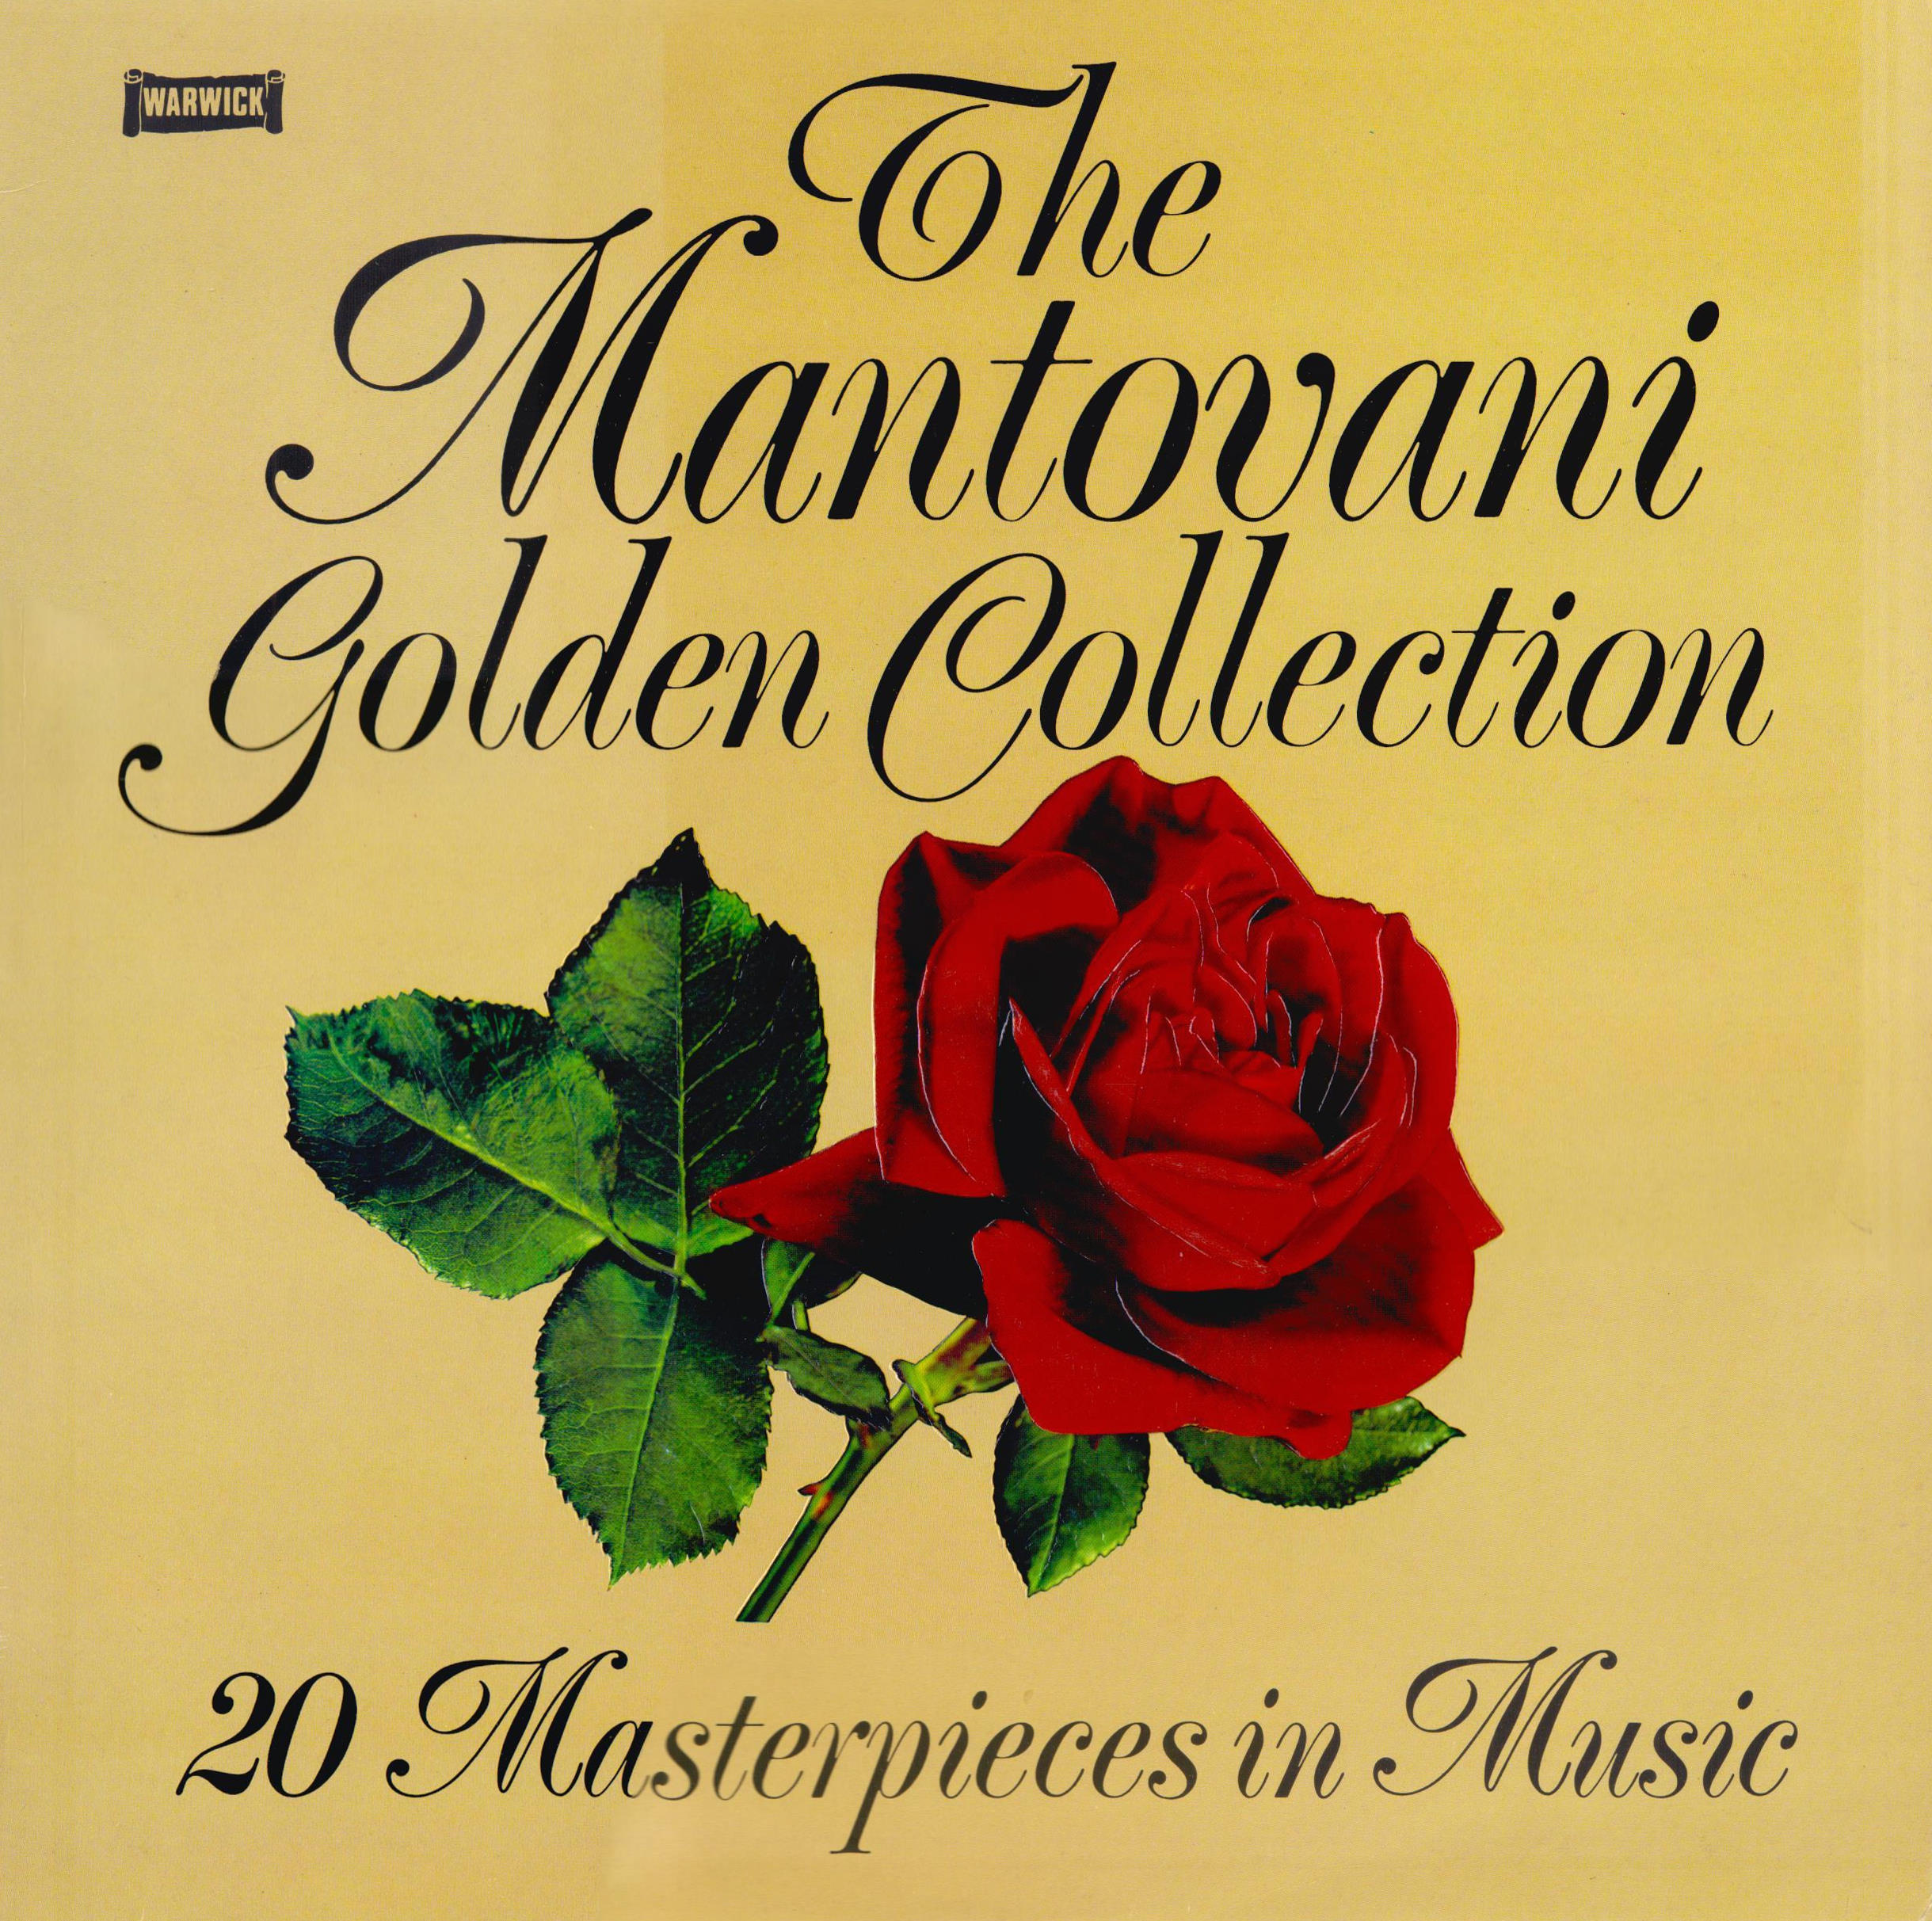 Mantovani And His Orchestra The Mantovani Golden Collection - 20 Masterpieces In Music